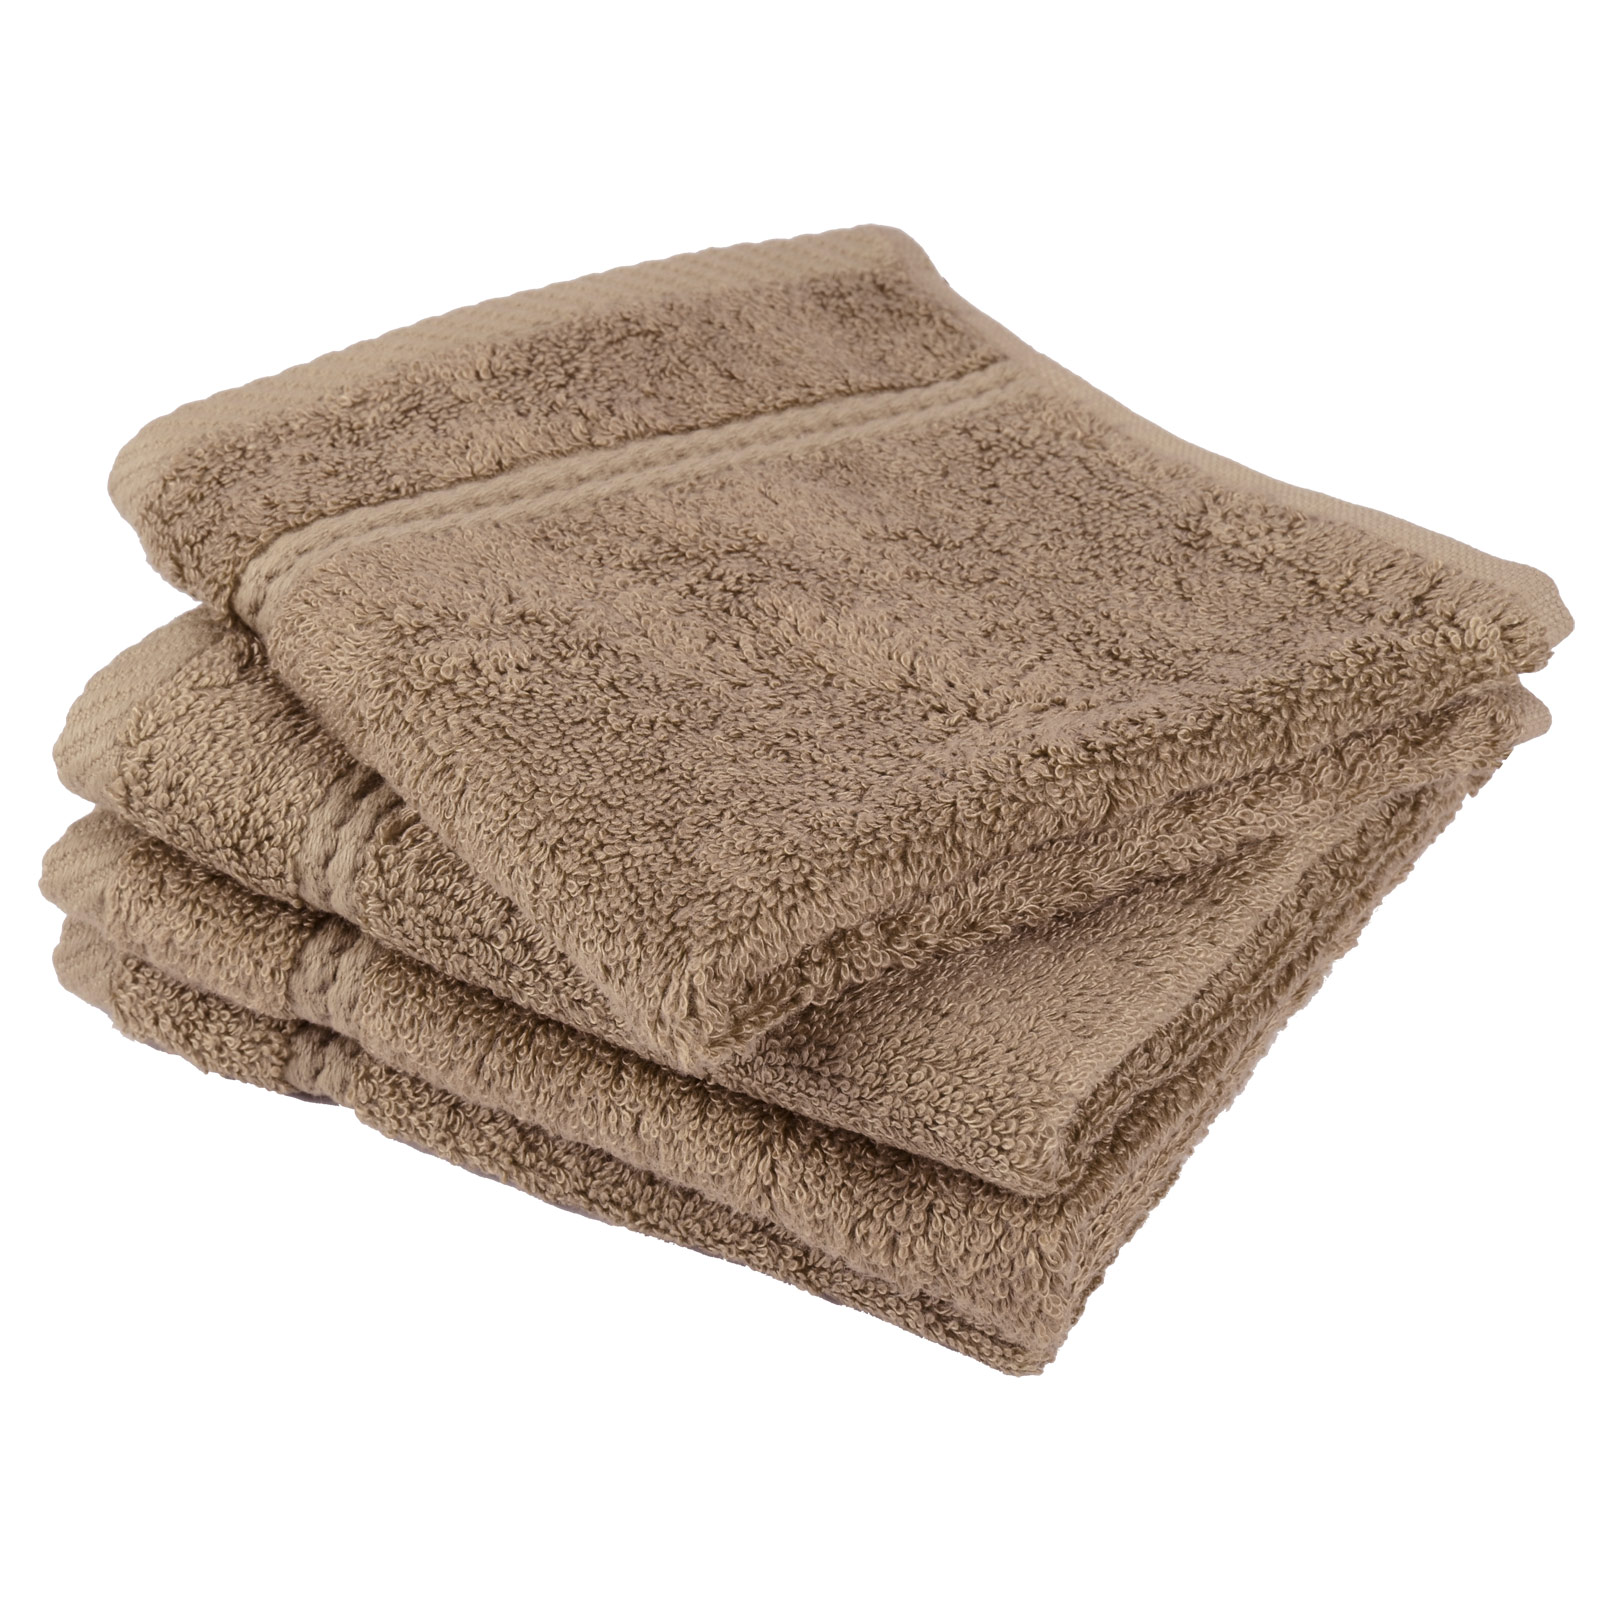 bathroom linen bath sheet bath towel towels